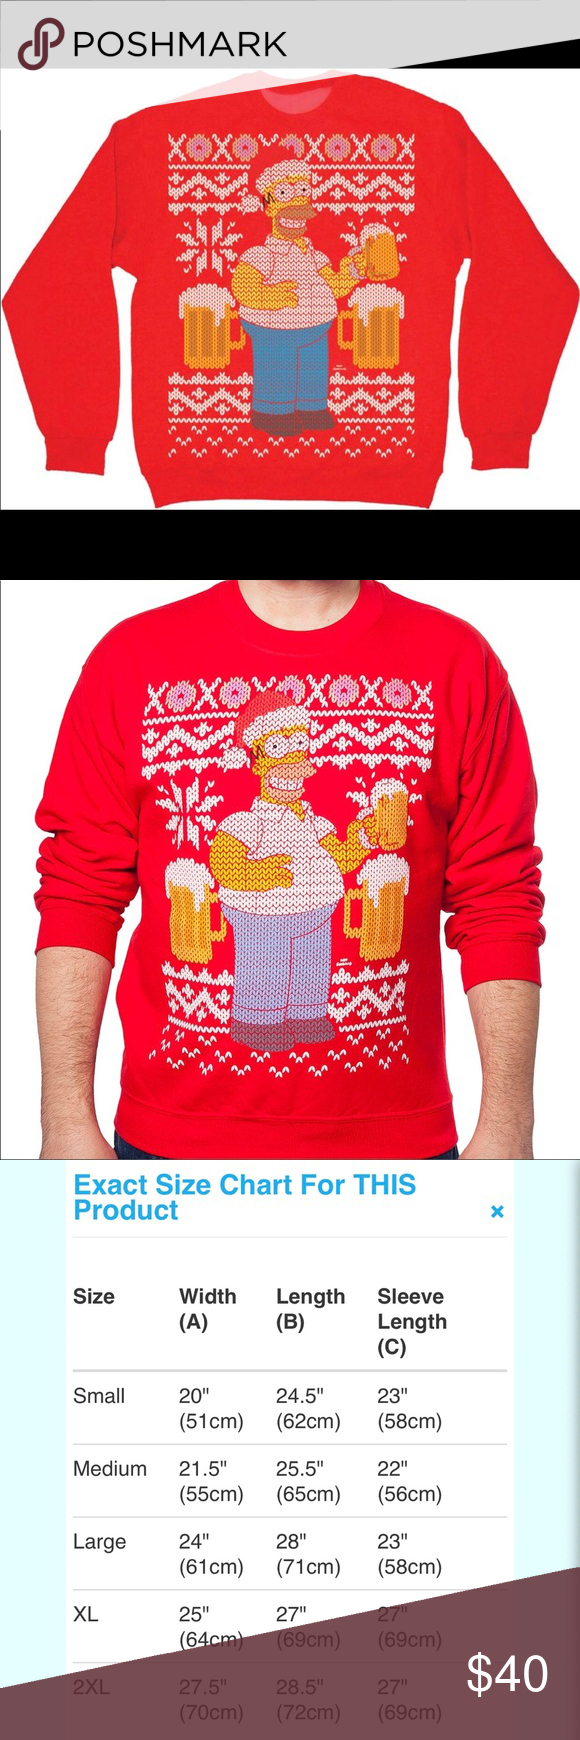 THE SIMPSONS Ugly Red Christmas Homer Beer Sz XXL • Vendor